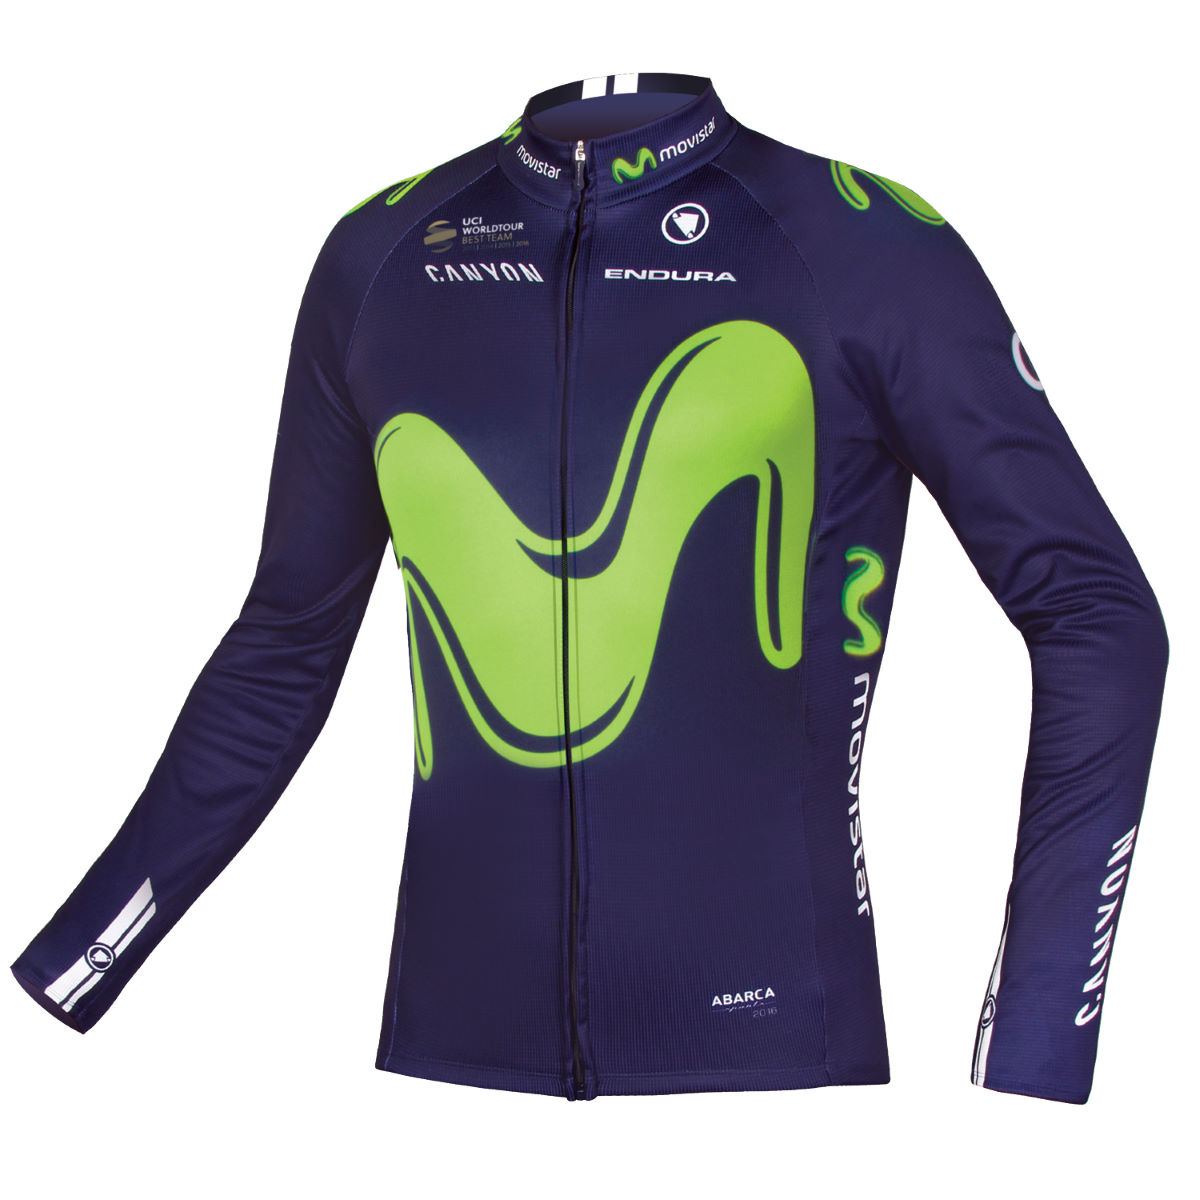 Maillot de manga larga Endura Movistar Team (2017) - Maillots de manga larga